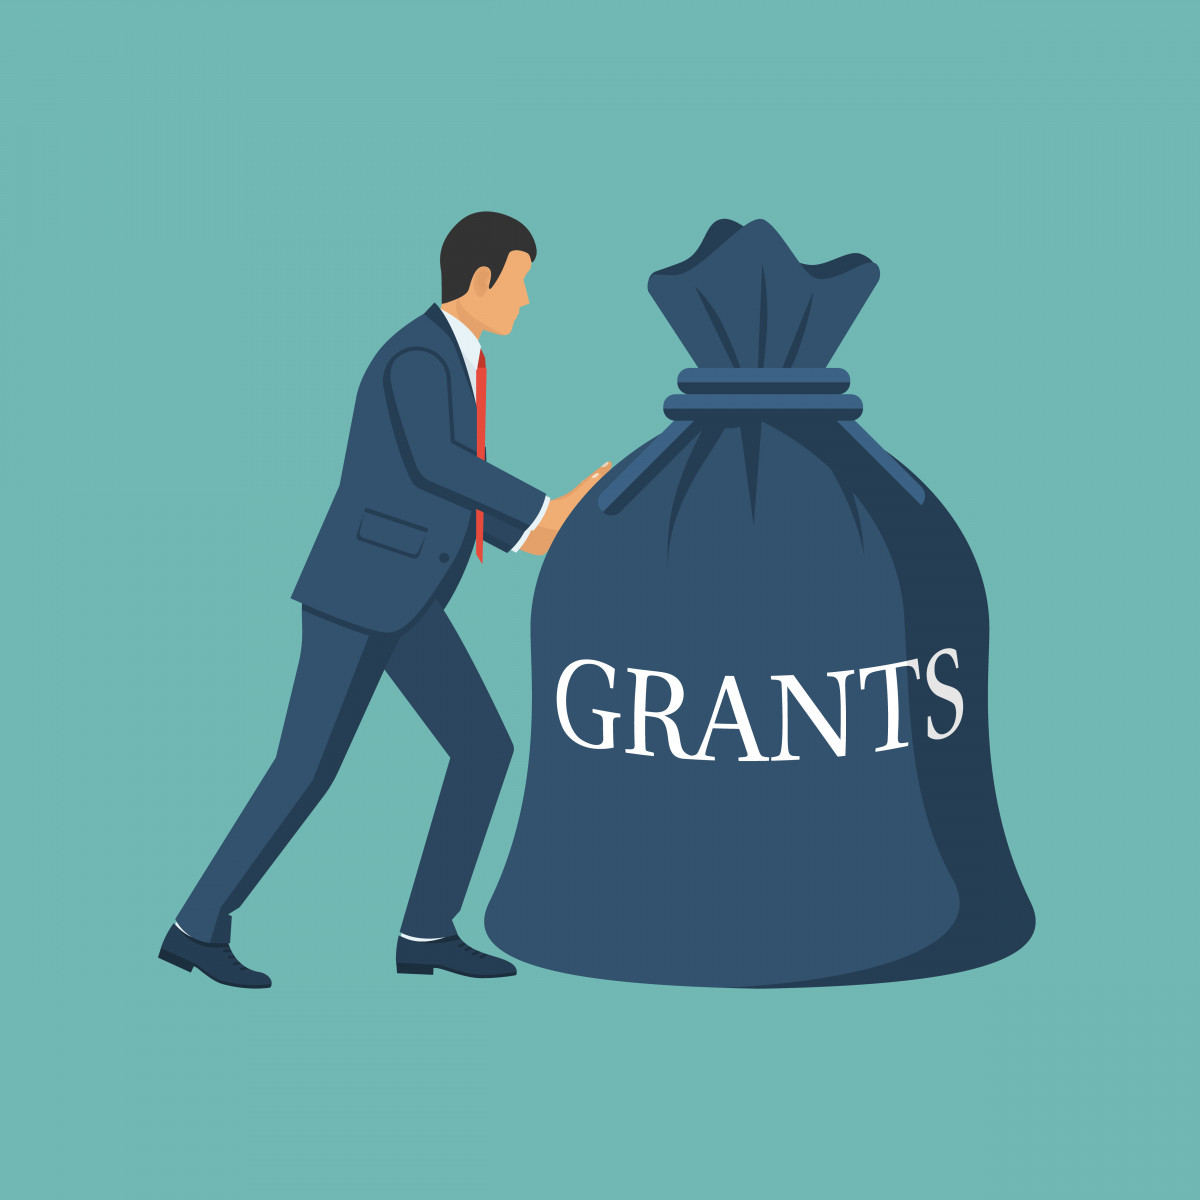 Wright State and NIH grant